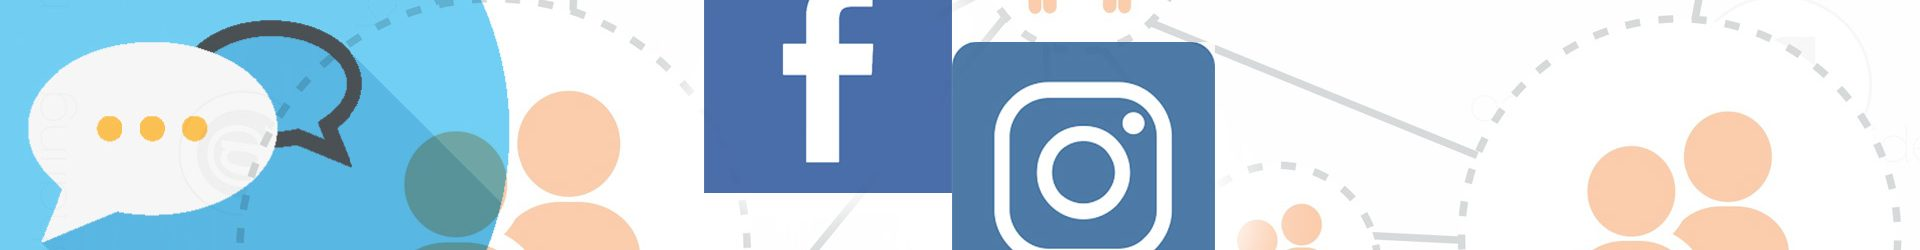 The Easiest and Most Effective Way to Advertise on FaceBook and Instagram